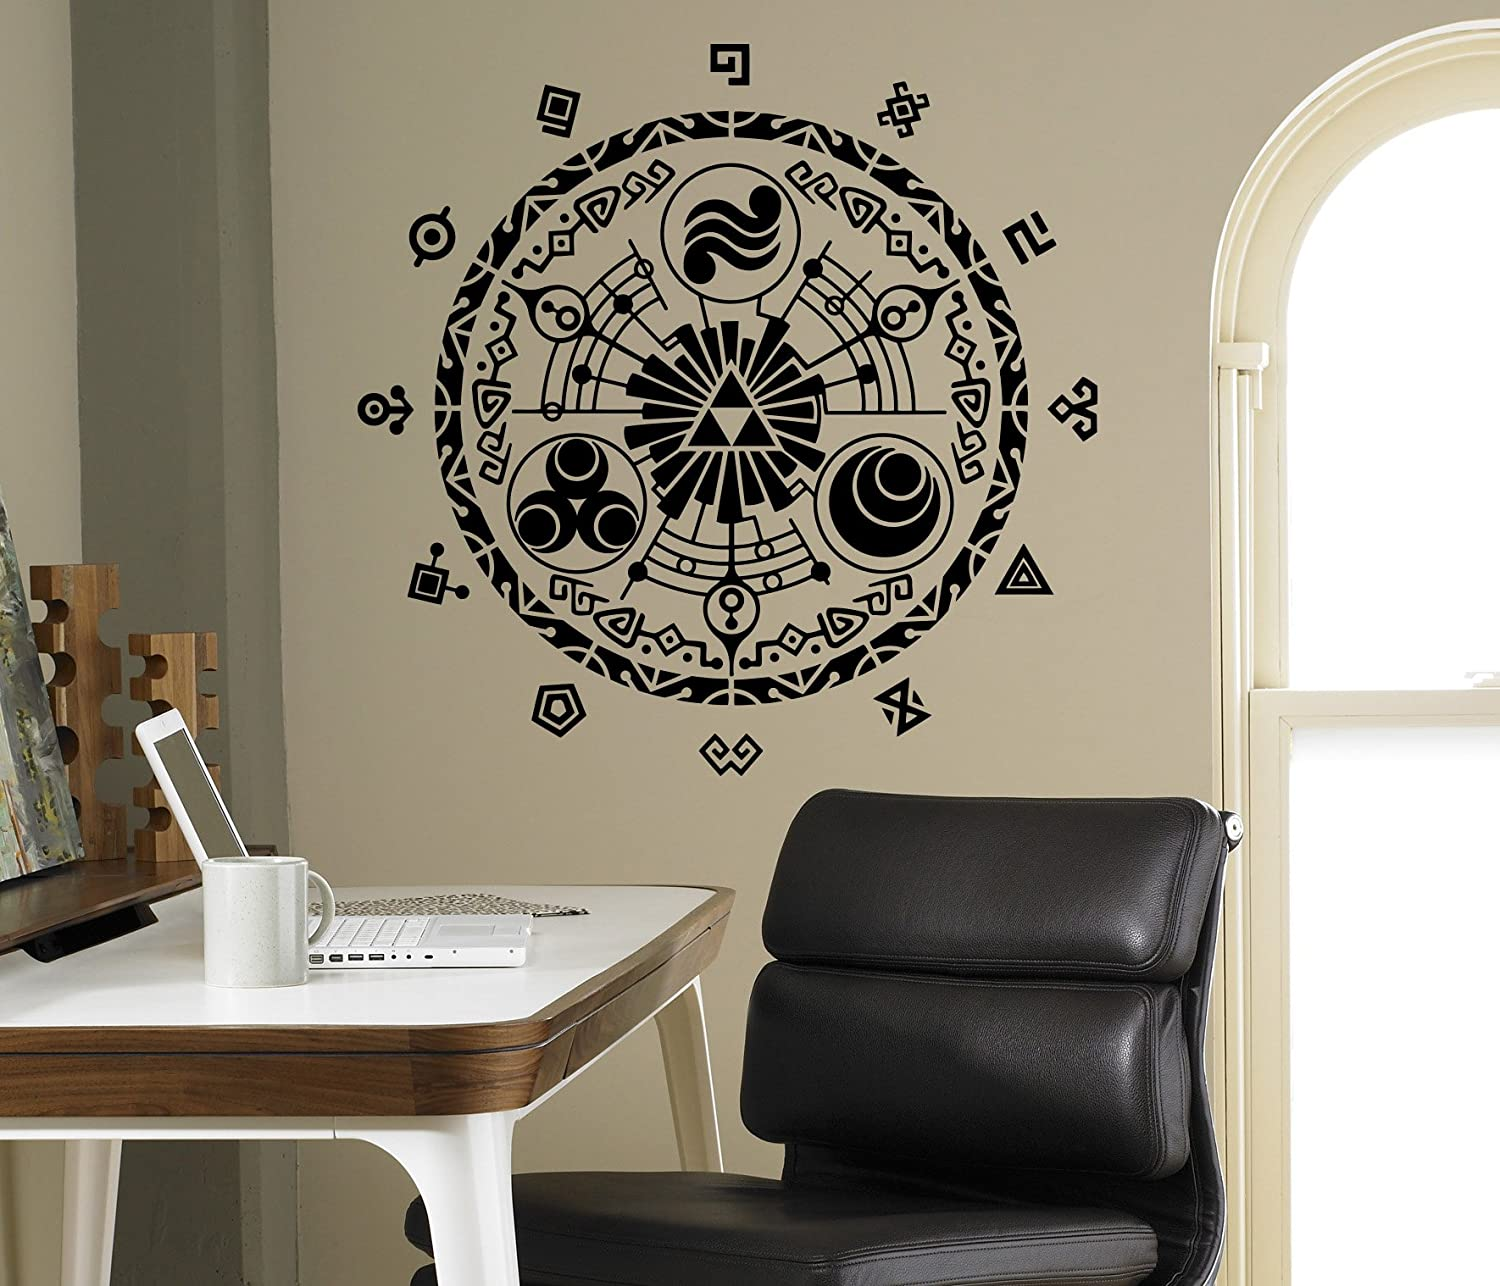 Legend of zelda wall decal gate of time vinyl sticker princess legend of zelda wall decal gate of time vinyl sticker princess zelda home interior living room decor door stickers housewares design anime manga kids amipublicfo Gallery